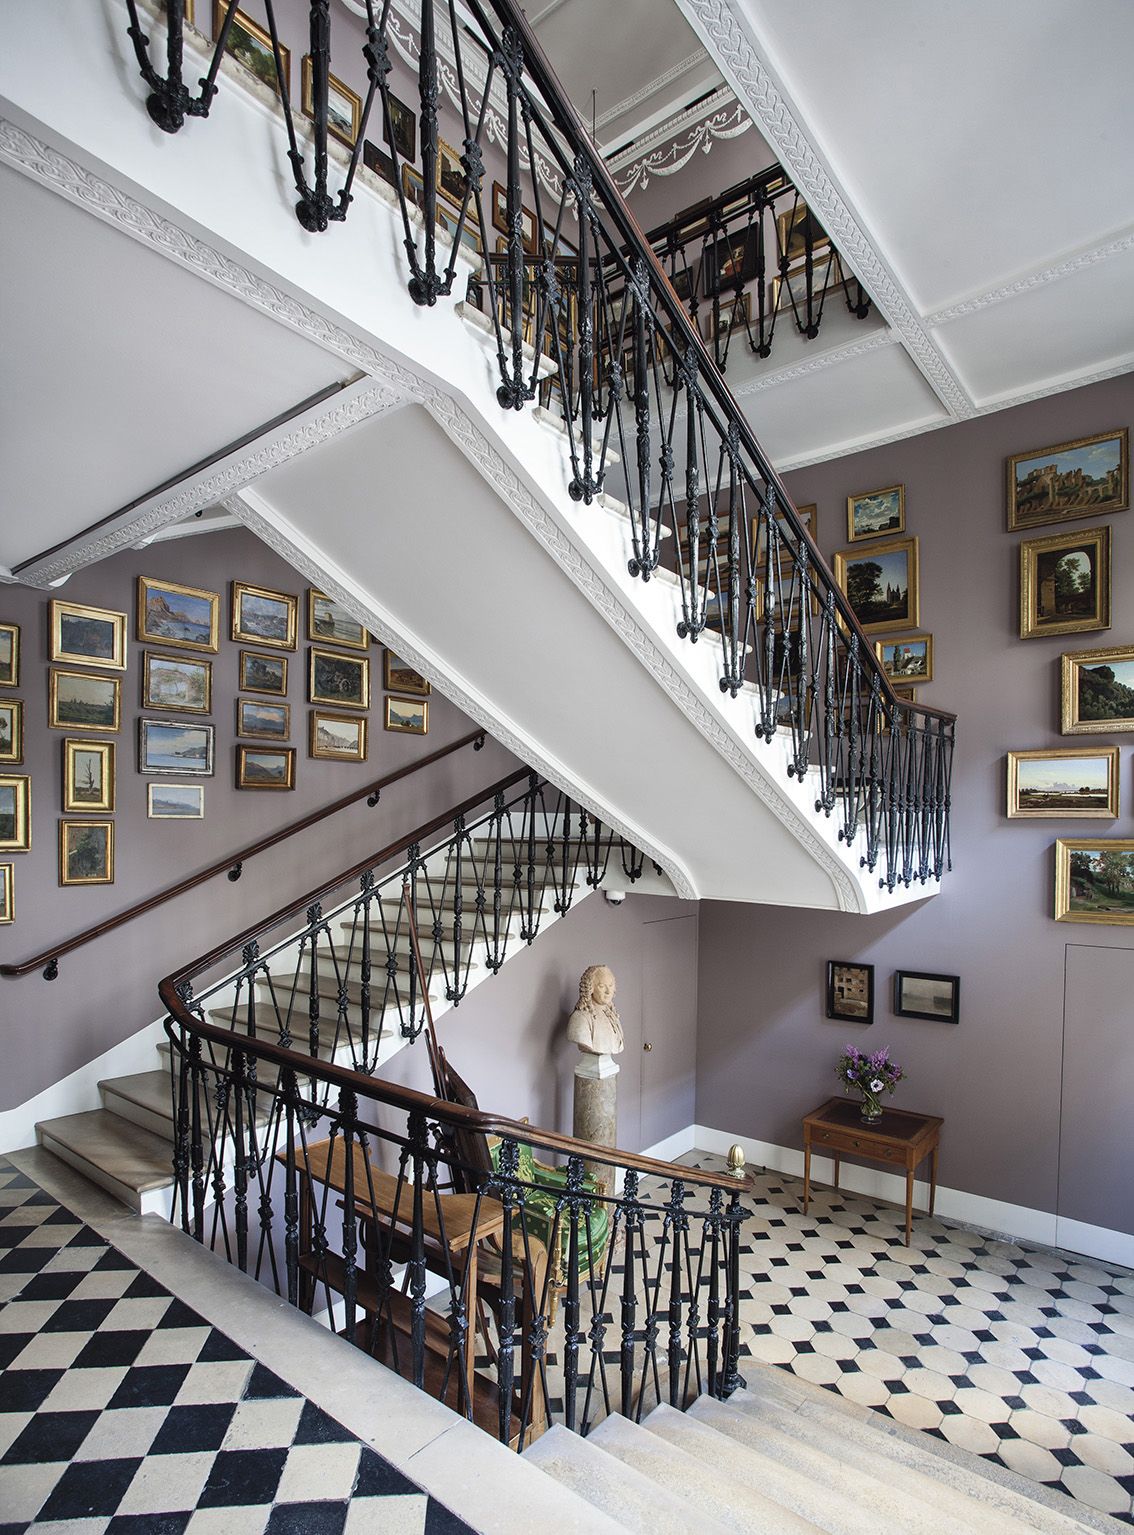 The staircase with oil studies at the Custodia Foundation.© Jannes Linders / Custodia Foundation, Frits Lugt Collection, Paris.